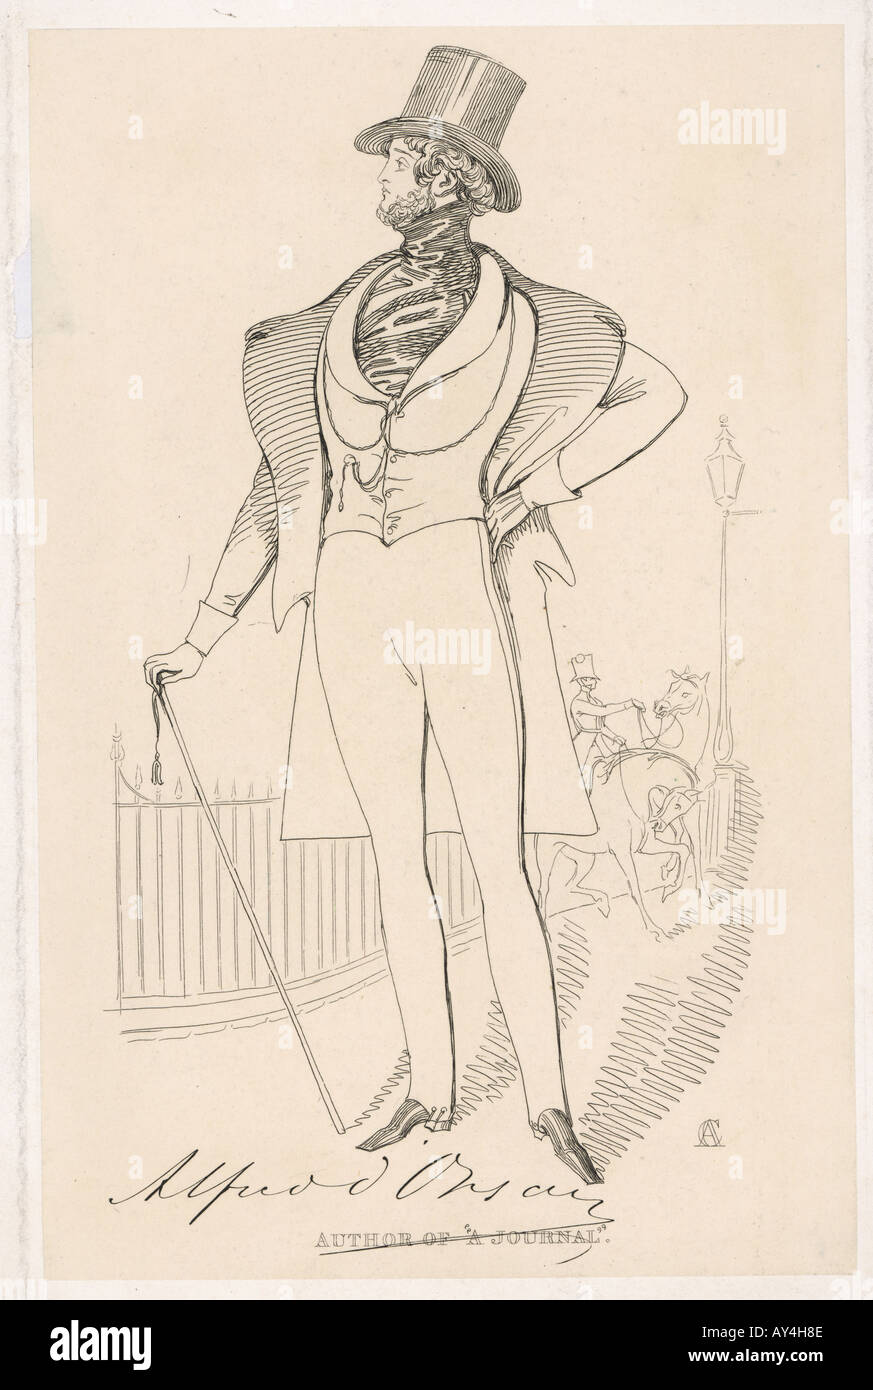 Count Dorsay Maclise - Stock Image